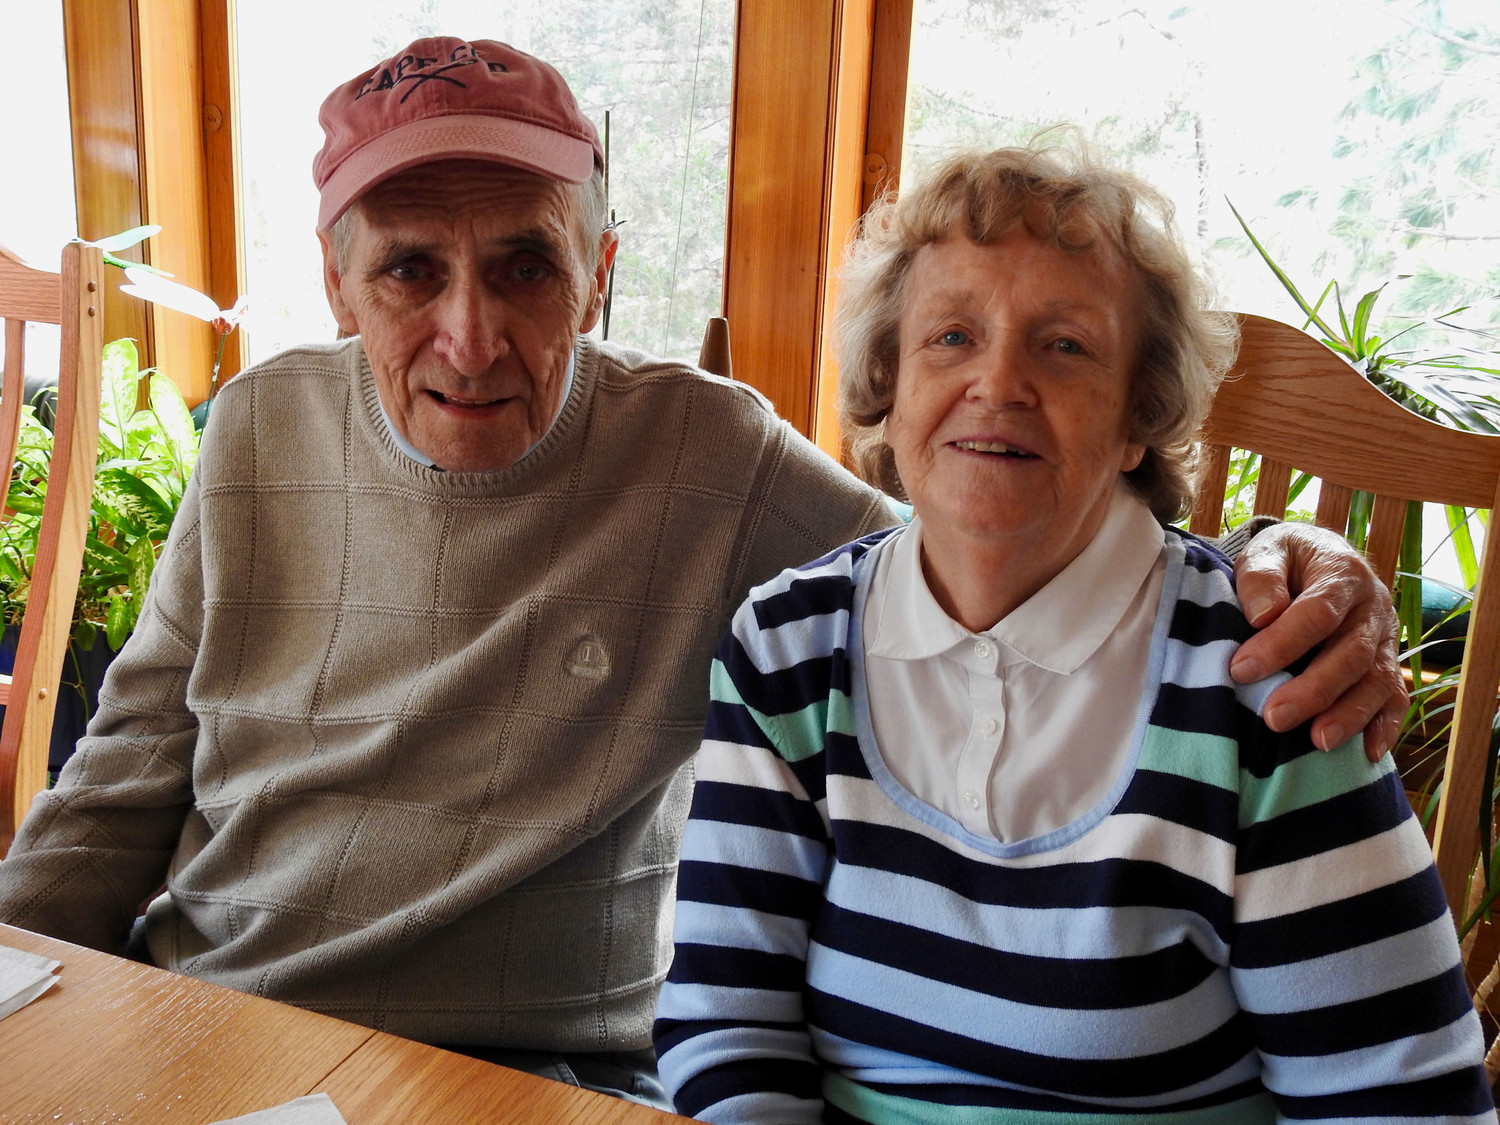 Lloyd Kenneth Anderson Sr. and Laura Jeanne (Jette) Anderson  Celebrate 65 Years of Marriage